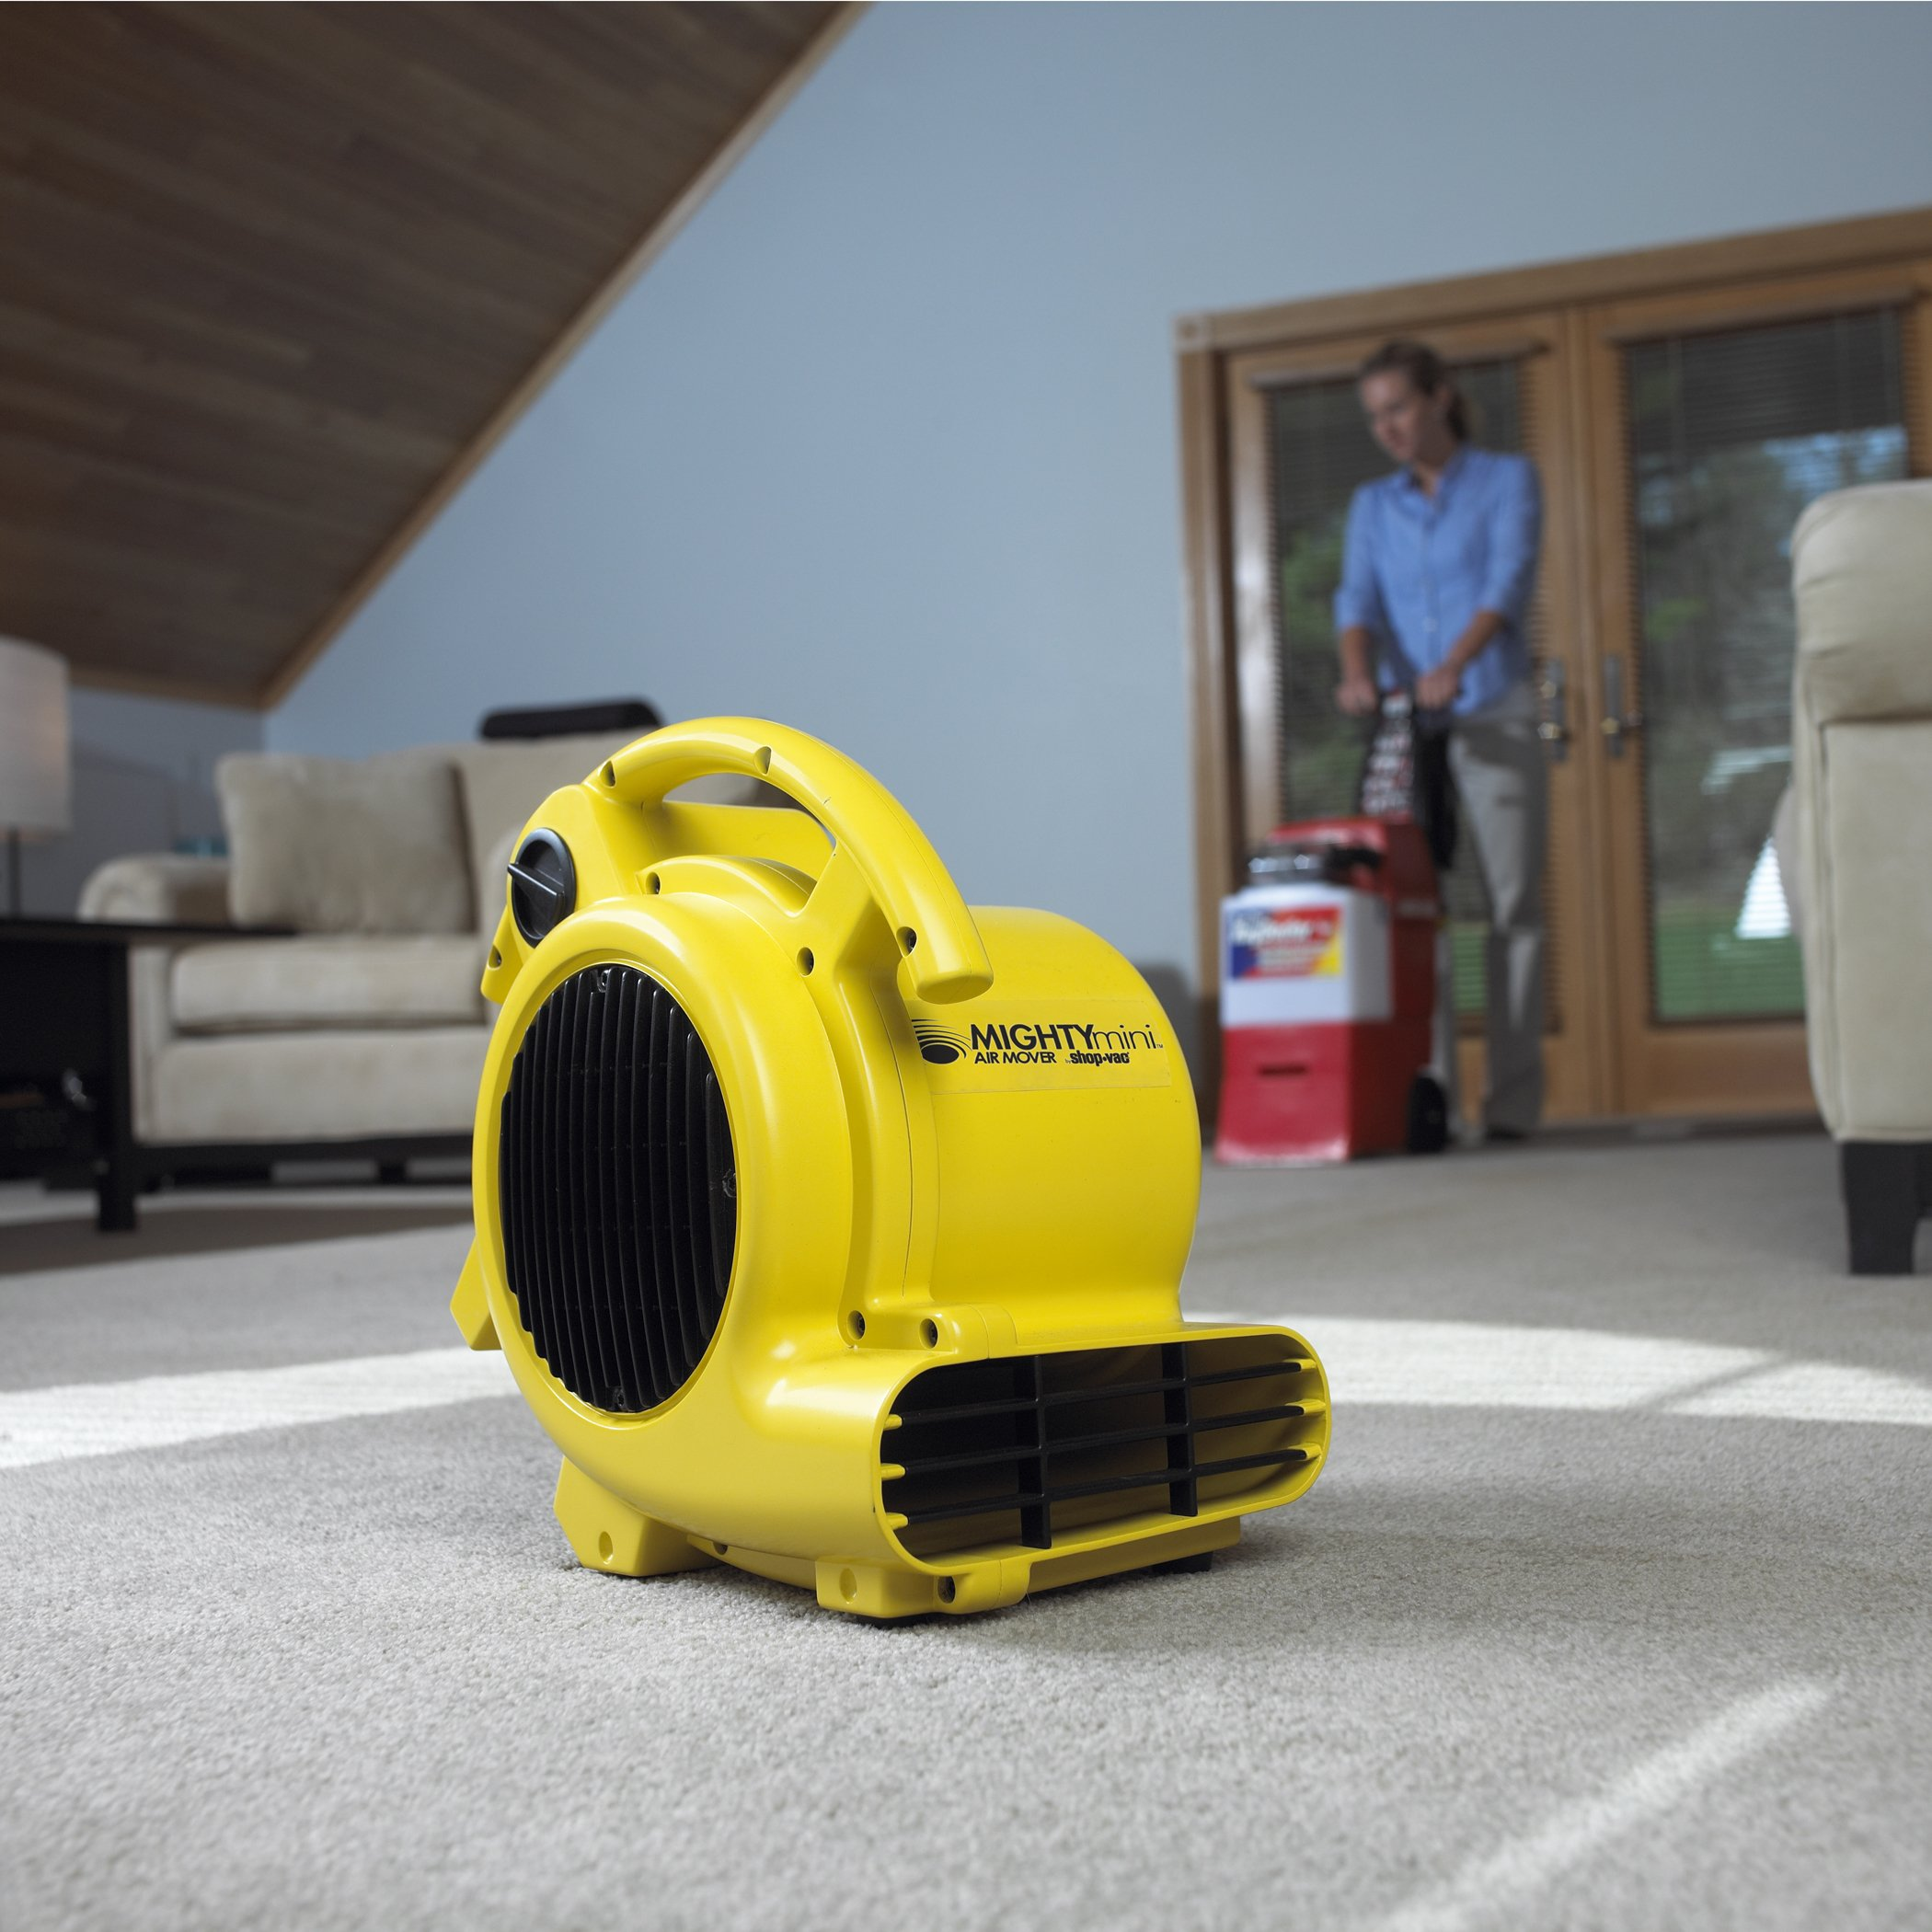 Shop-Air by Shop-Vac 1032000 Mighty Mini Air Mover 3-Speed 3-Position Dryer for Wet Carpets, Floors, Walls & Ceilings, 500 CFM Motor by Shop-Vac